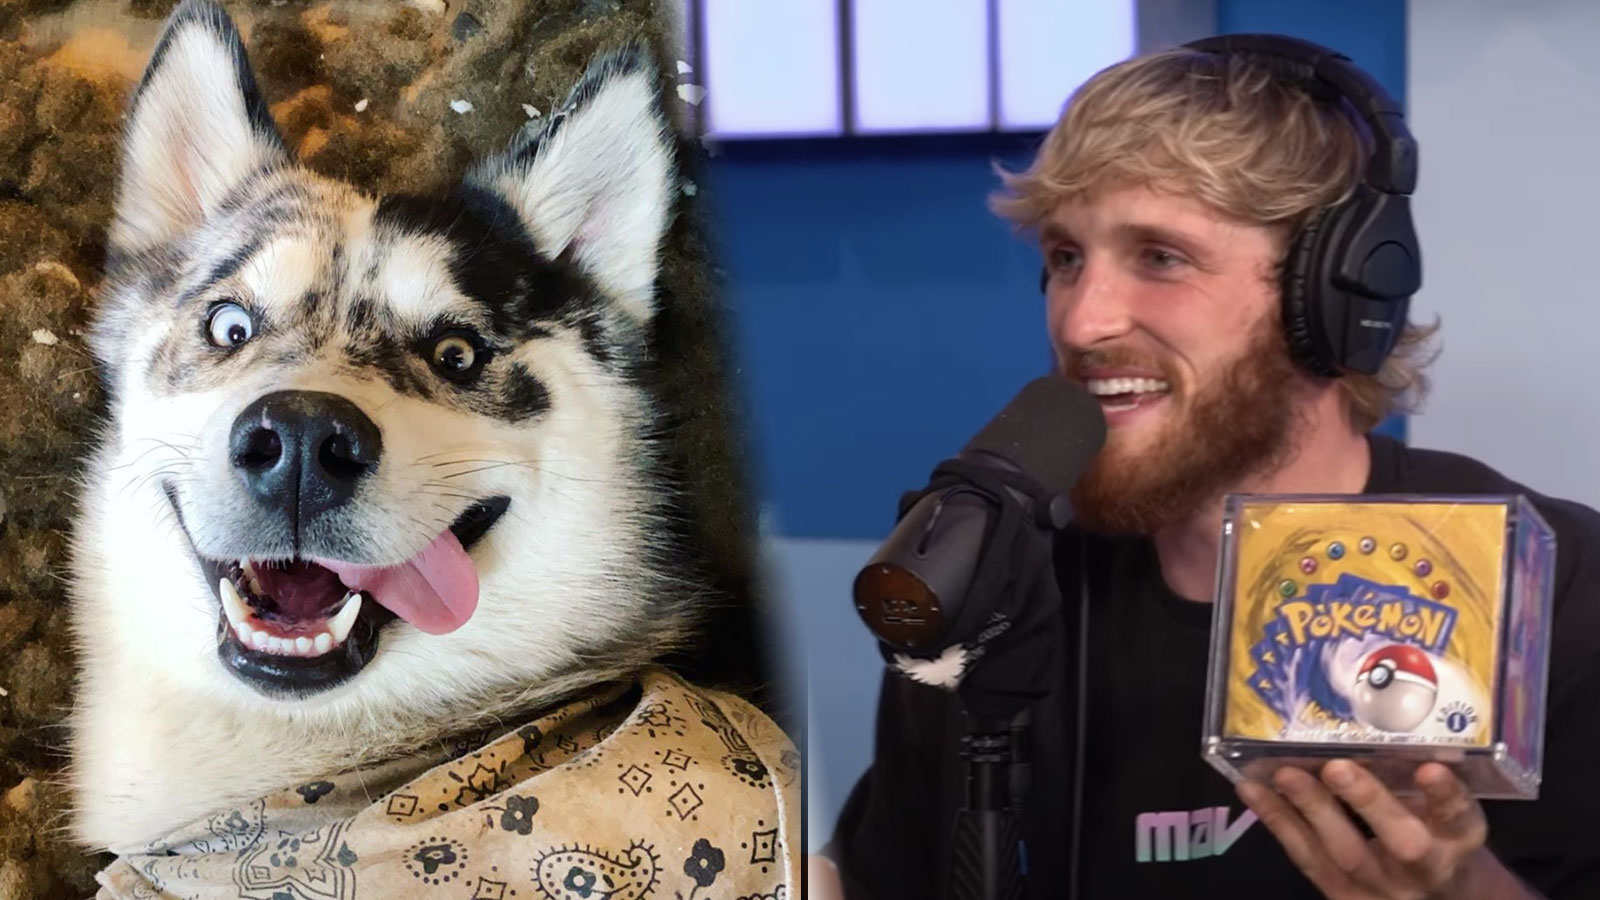 logan paul's dog and logan with pokemon cards